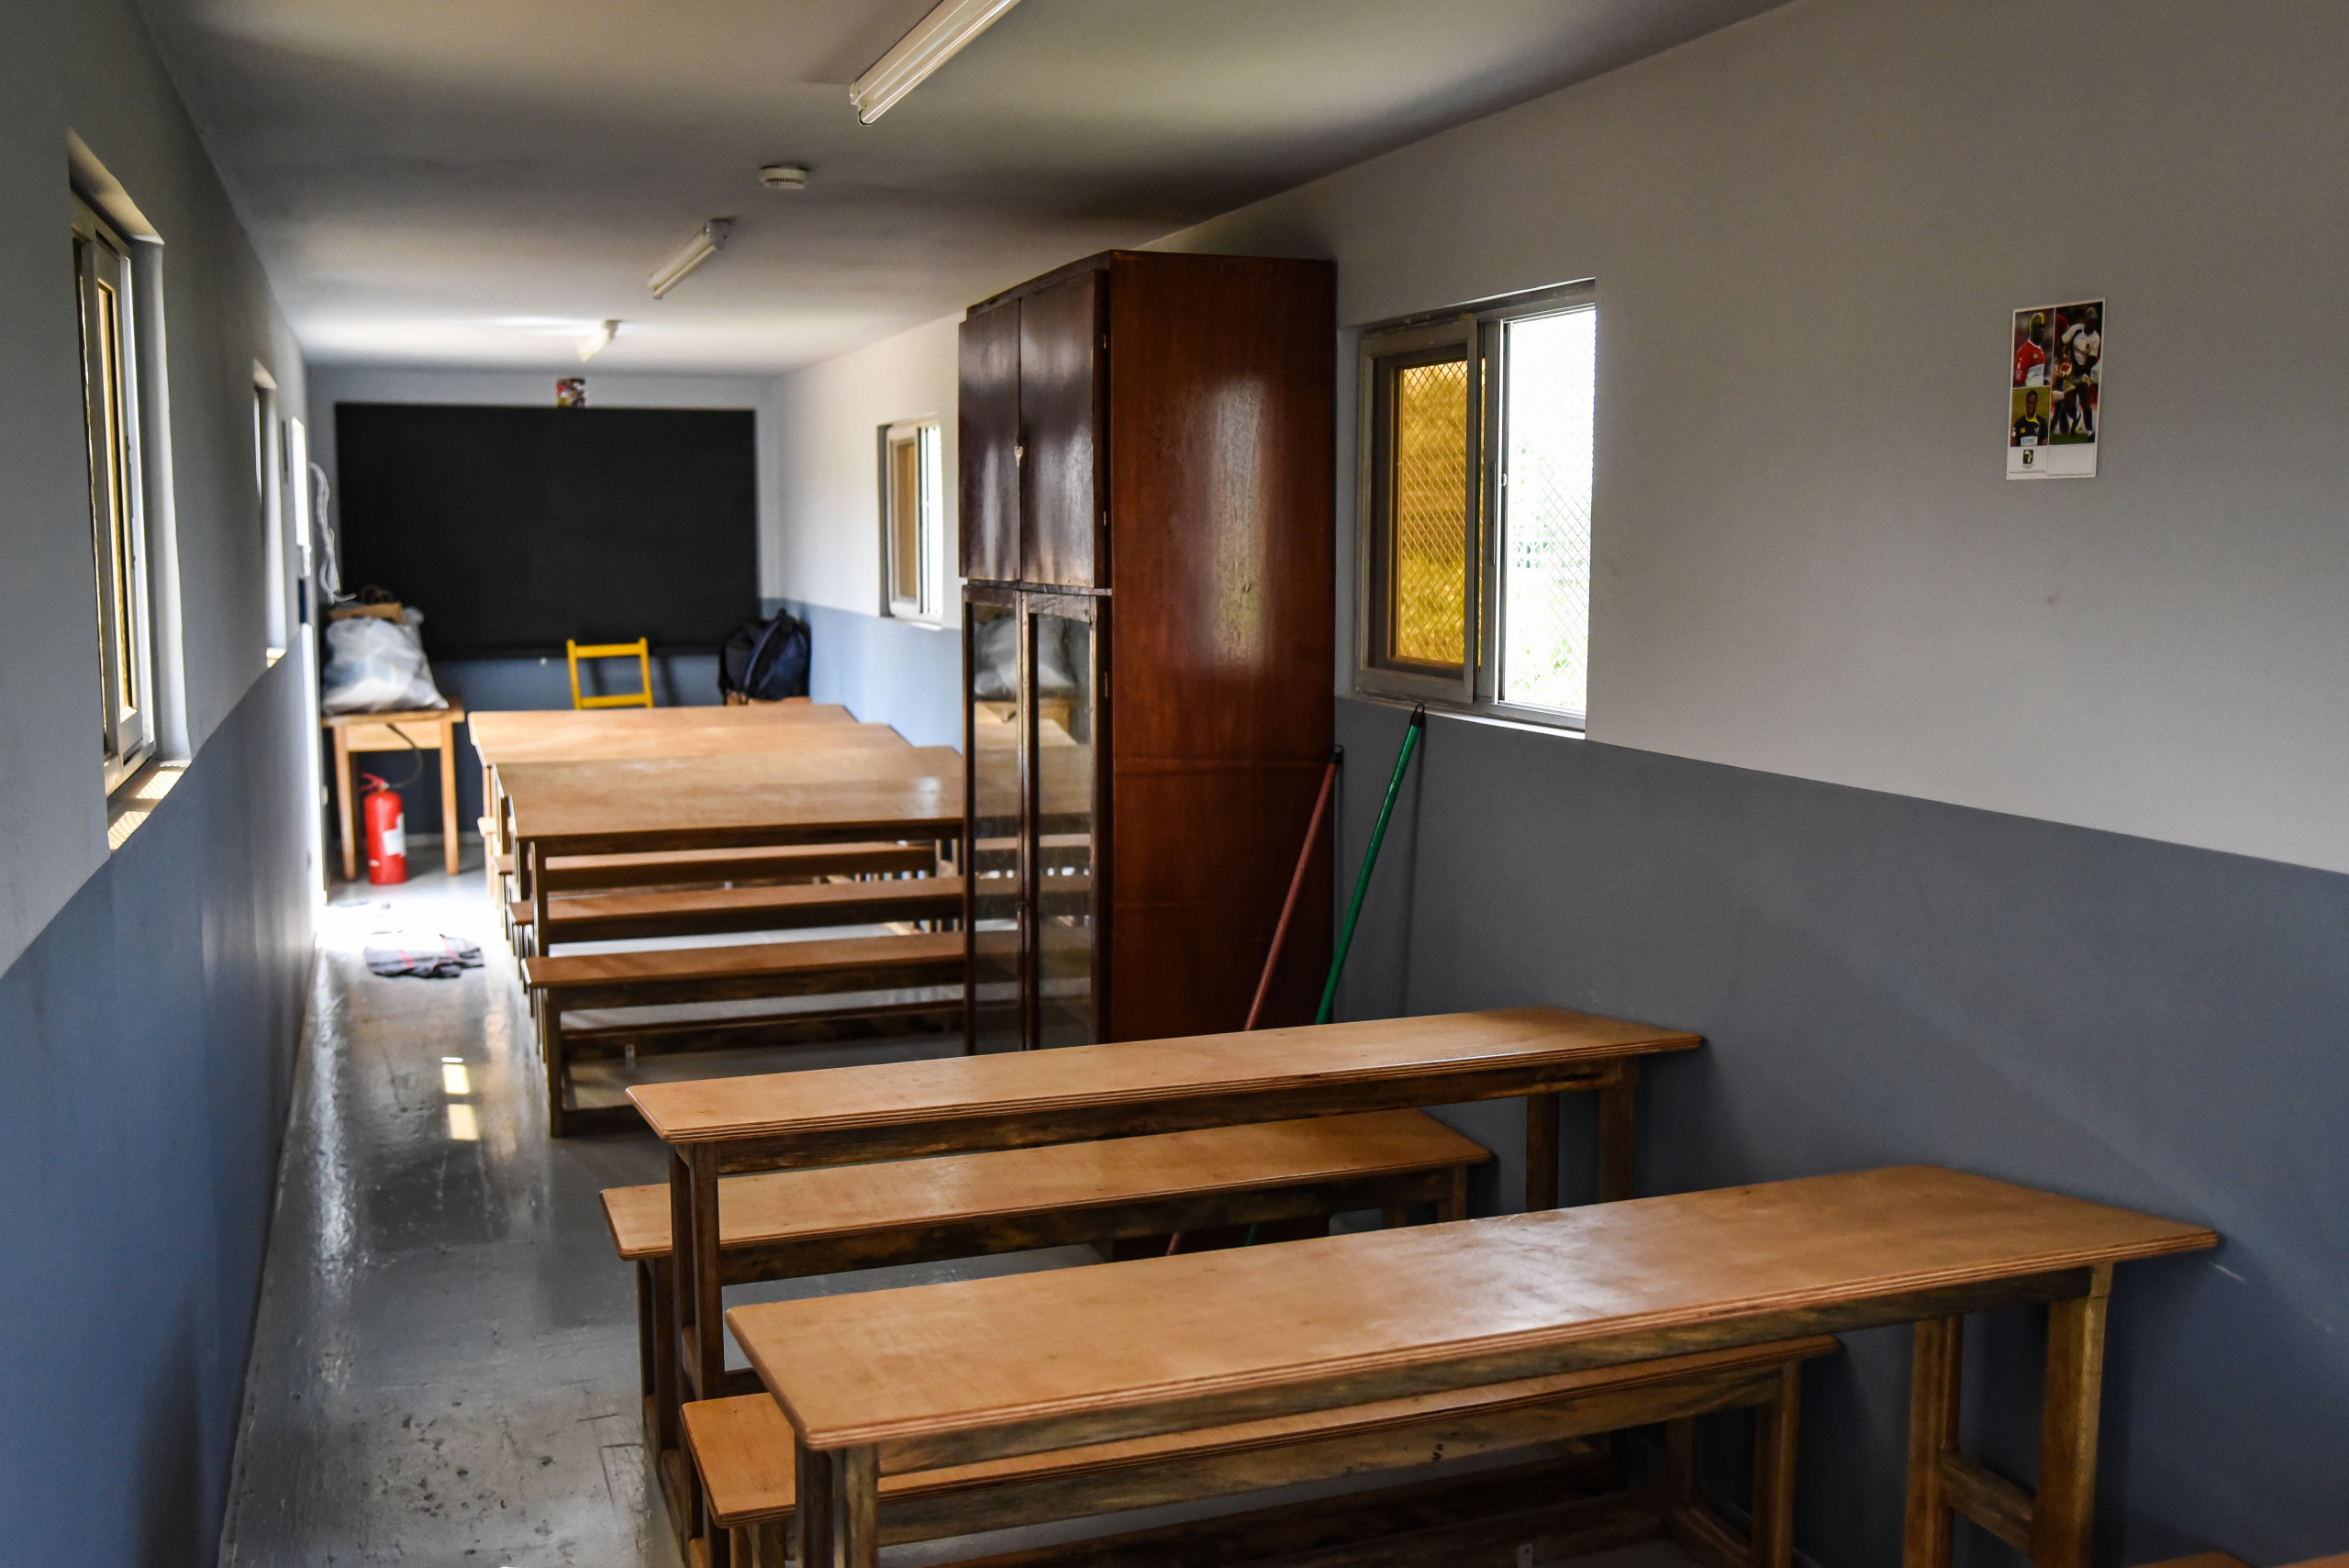 Inside of the after-school room